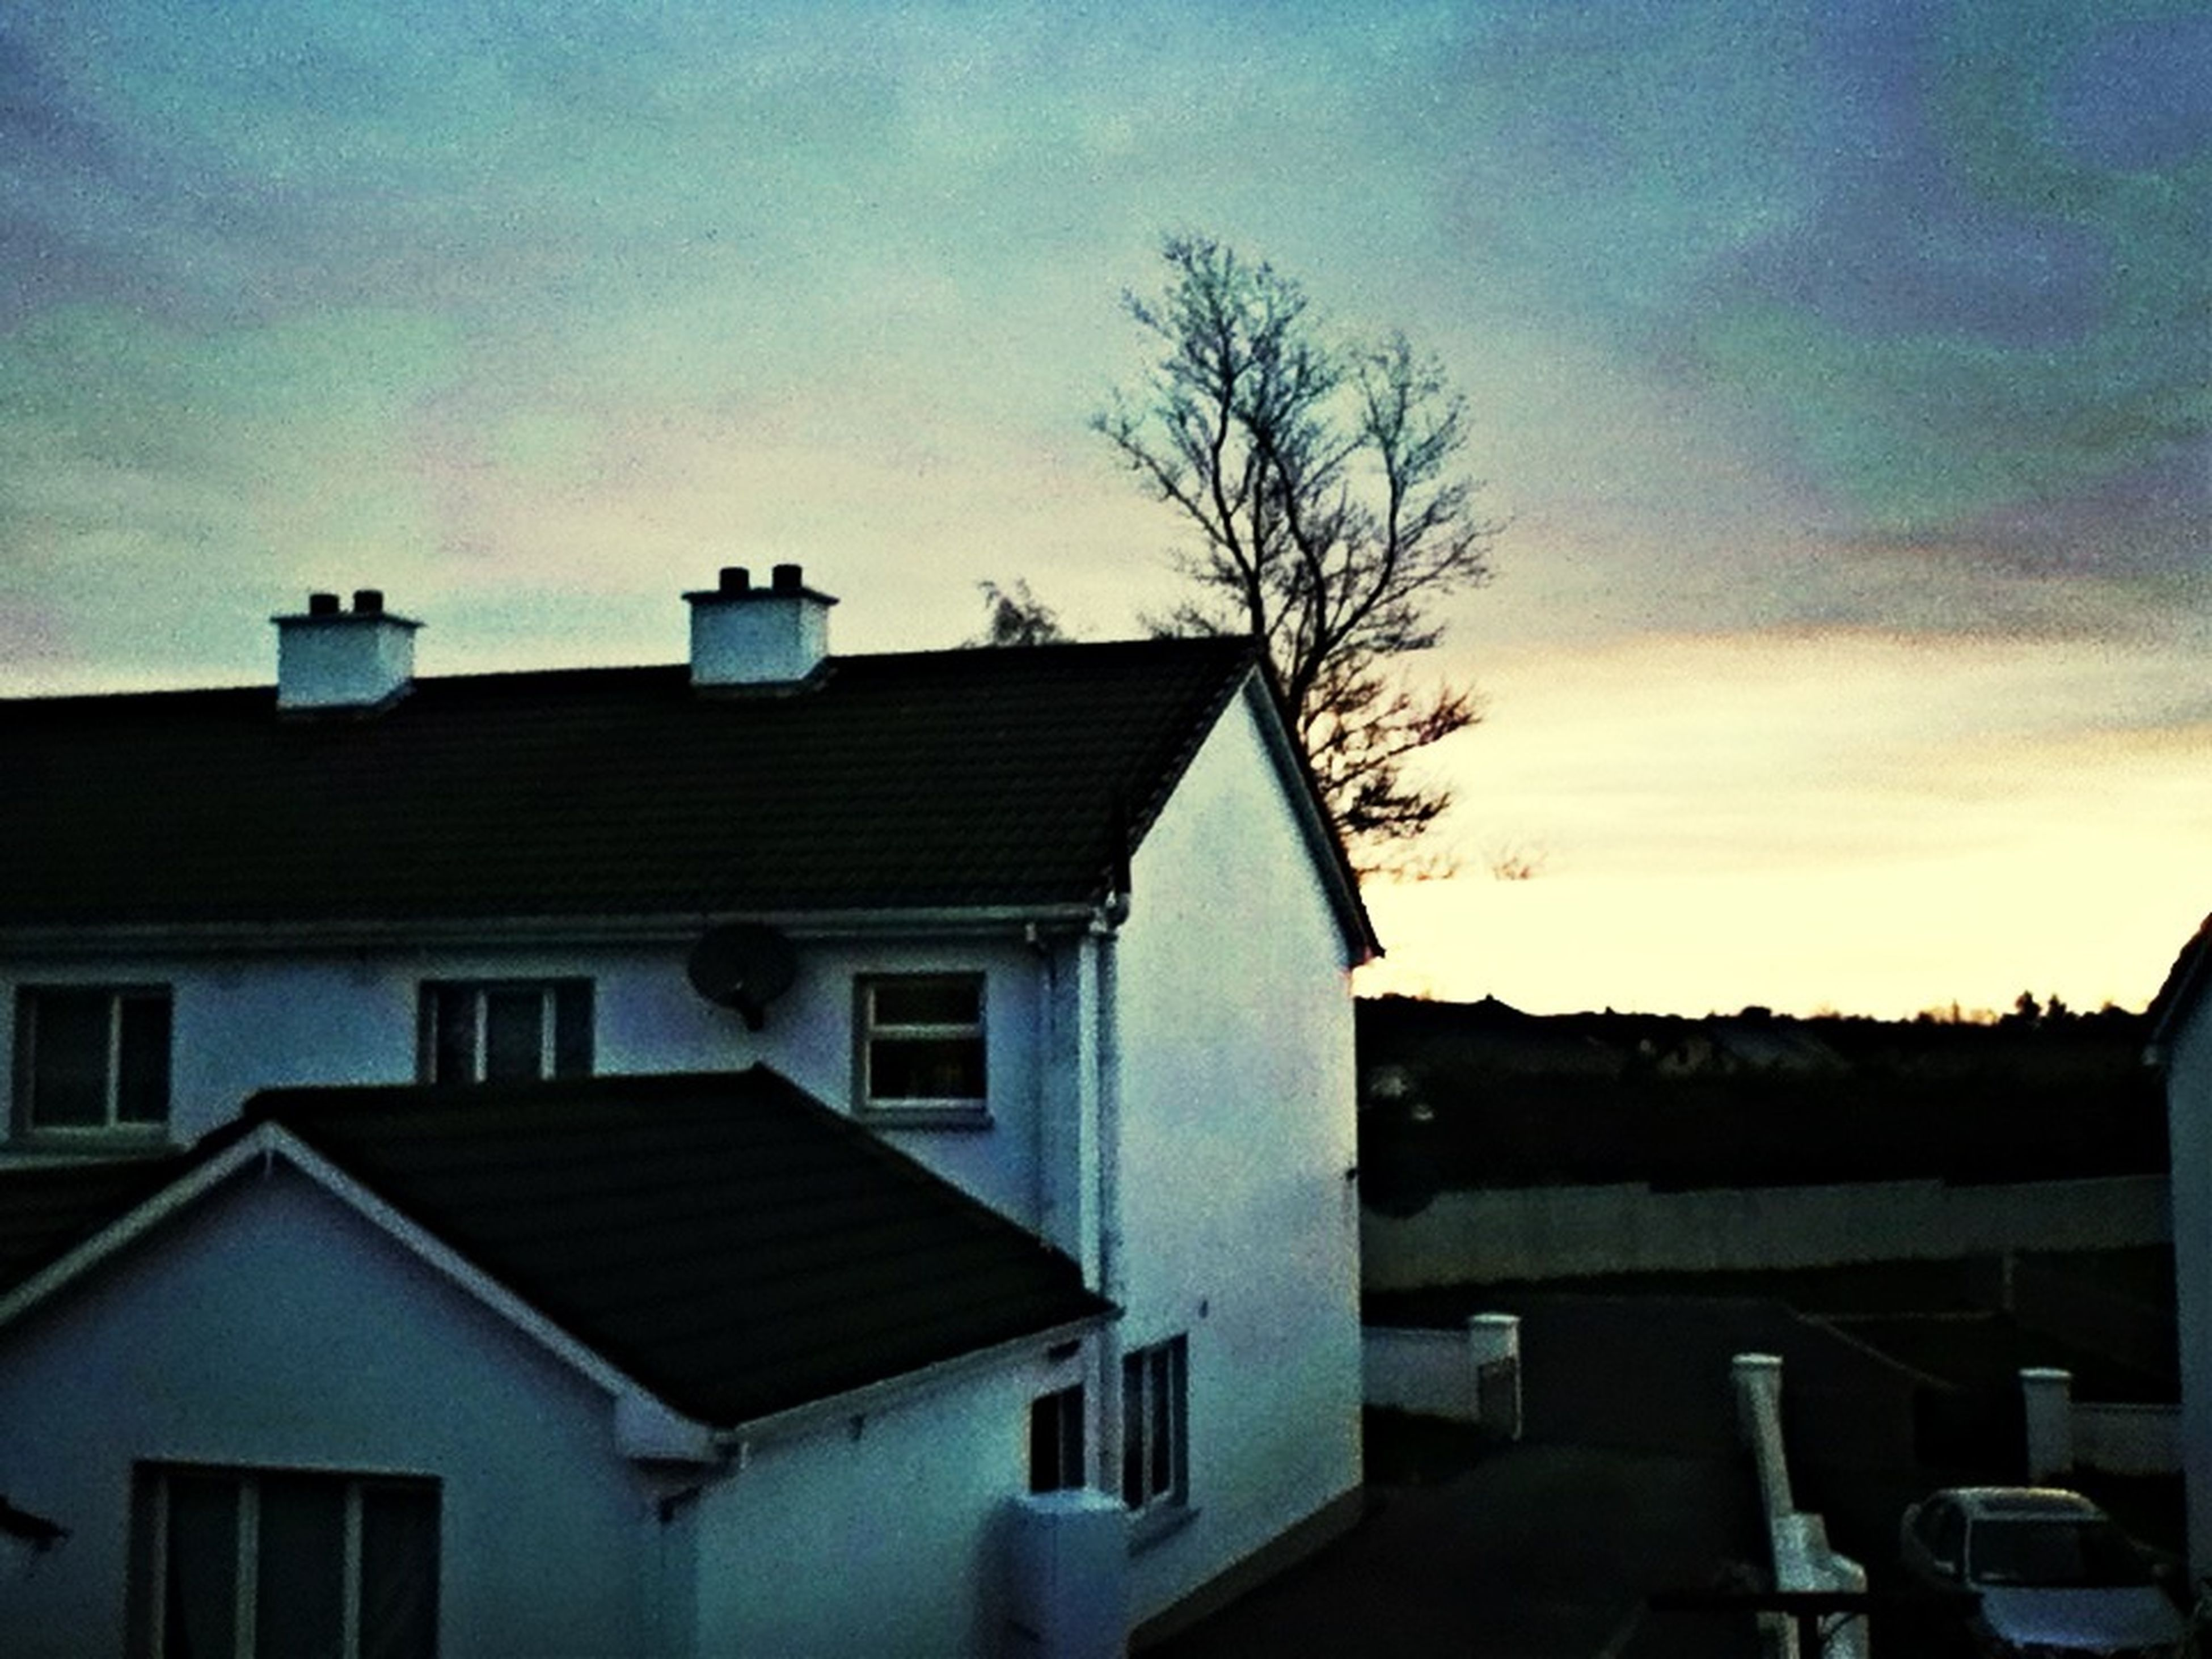 building exterior, architecture, built structure, house, sky, roof, residential structure, residential building, cloud - sky, cloud, tree, low angle view, window, outdoors, no people, sunlight, town, building, day, nature